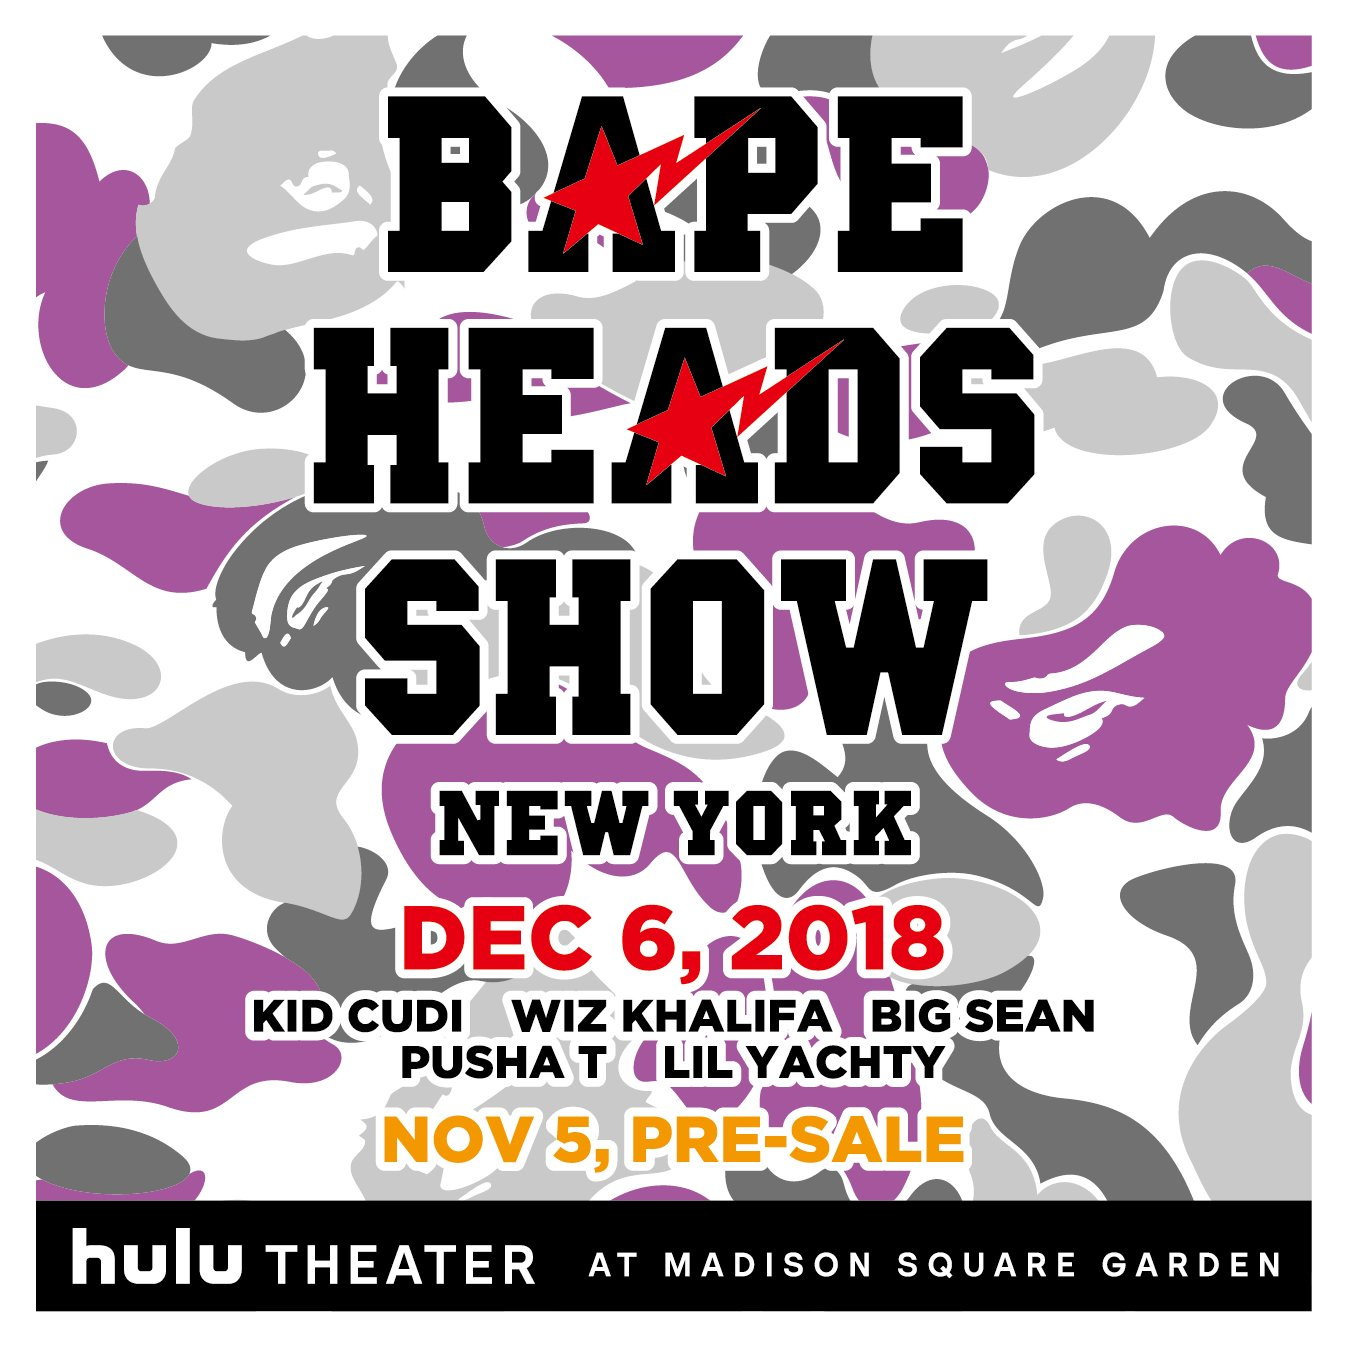 See you December 6th at Bape Heads Show. https://t.co/5HcImvSkd5 https://t.co/CpQJoqL0jM